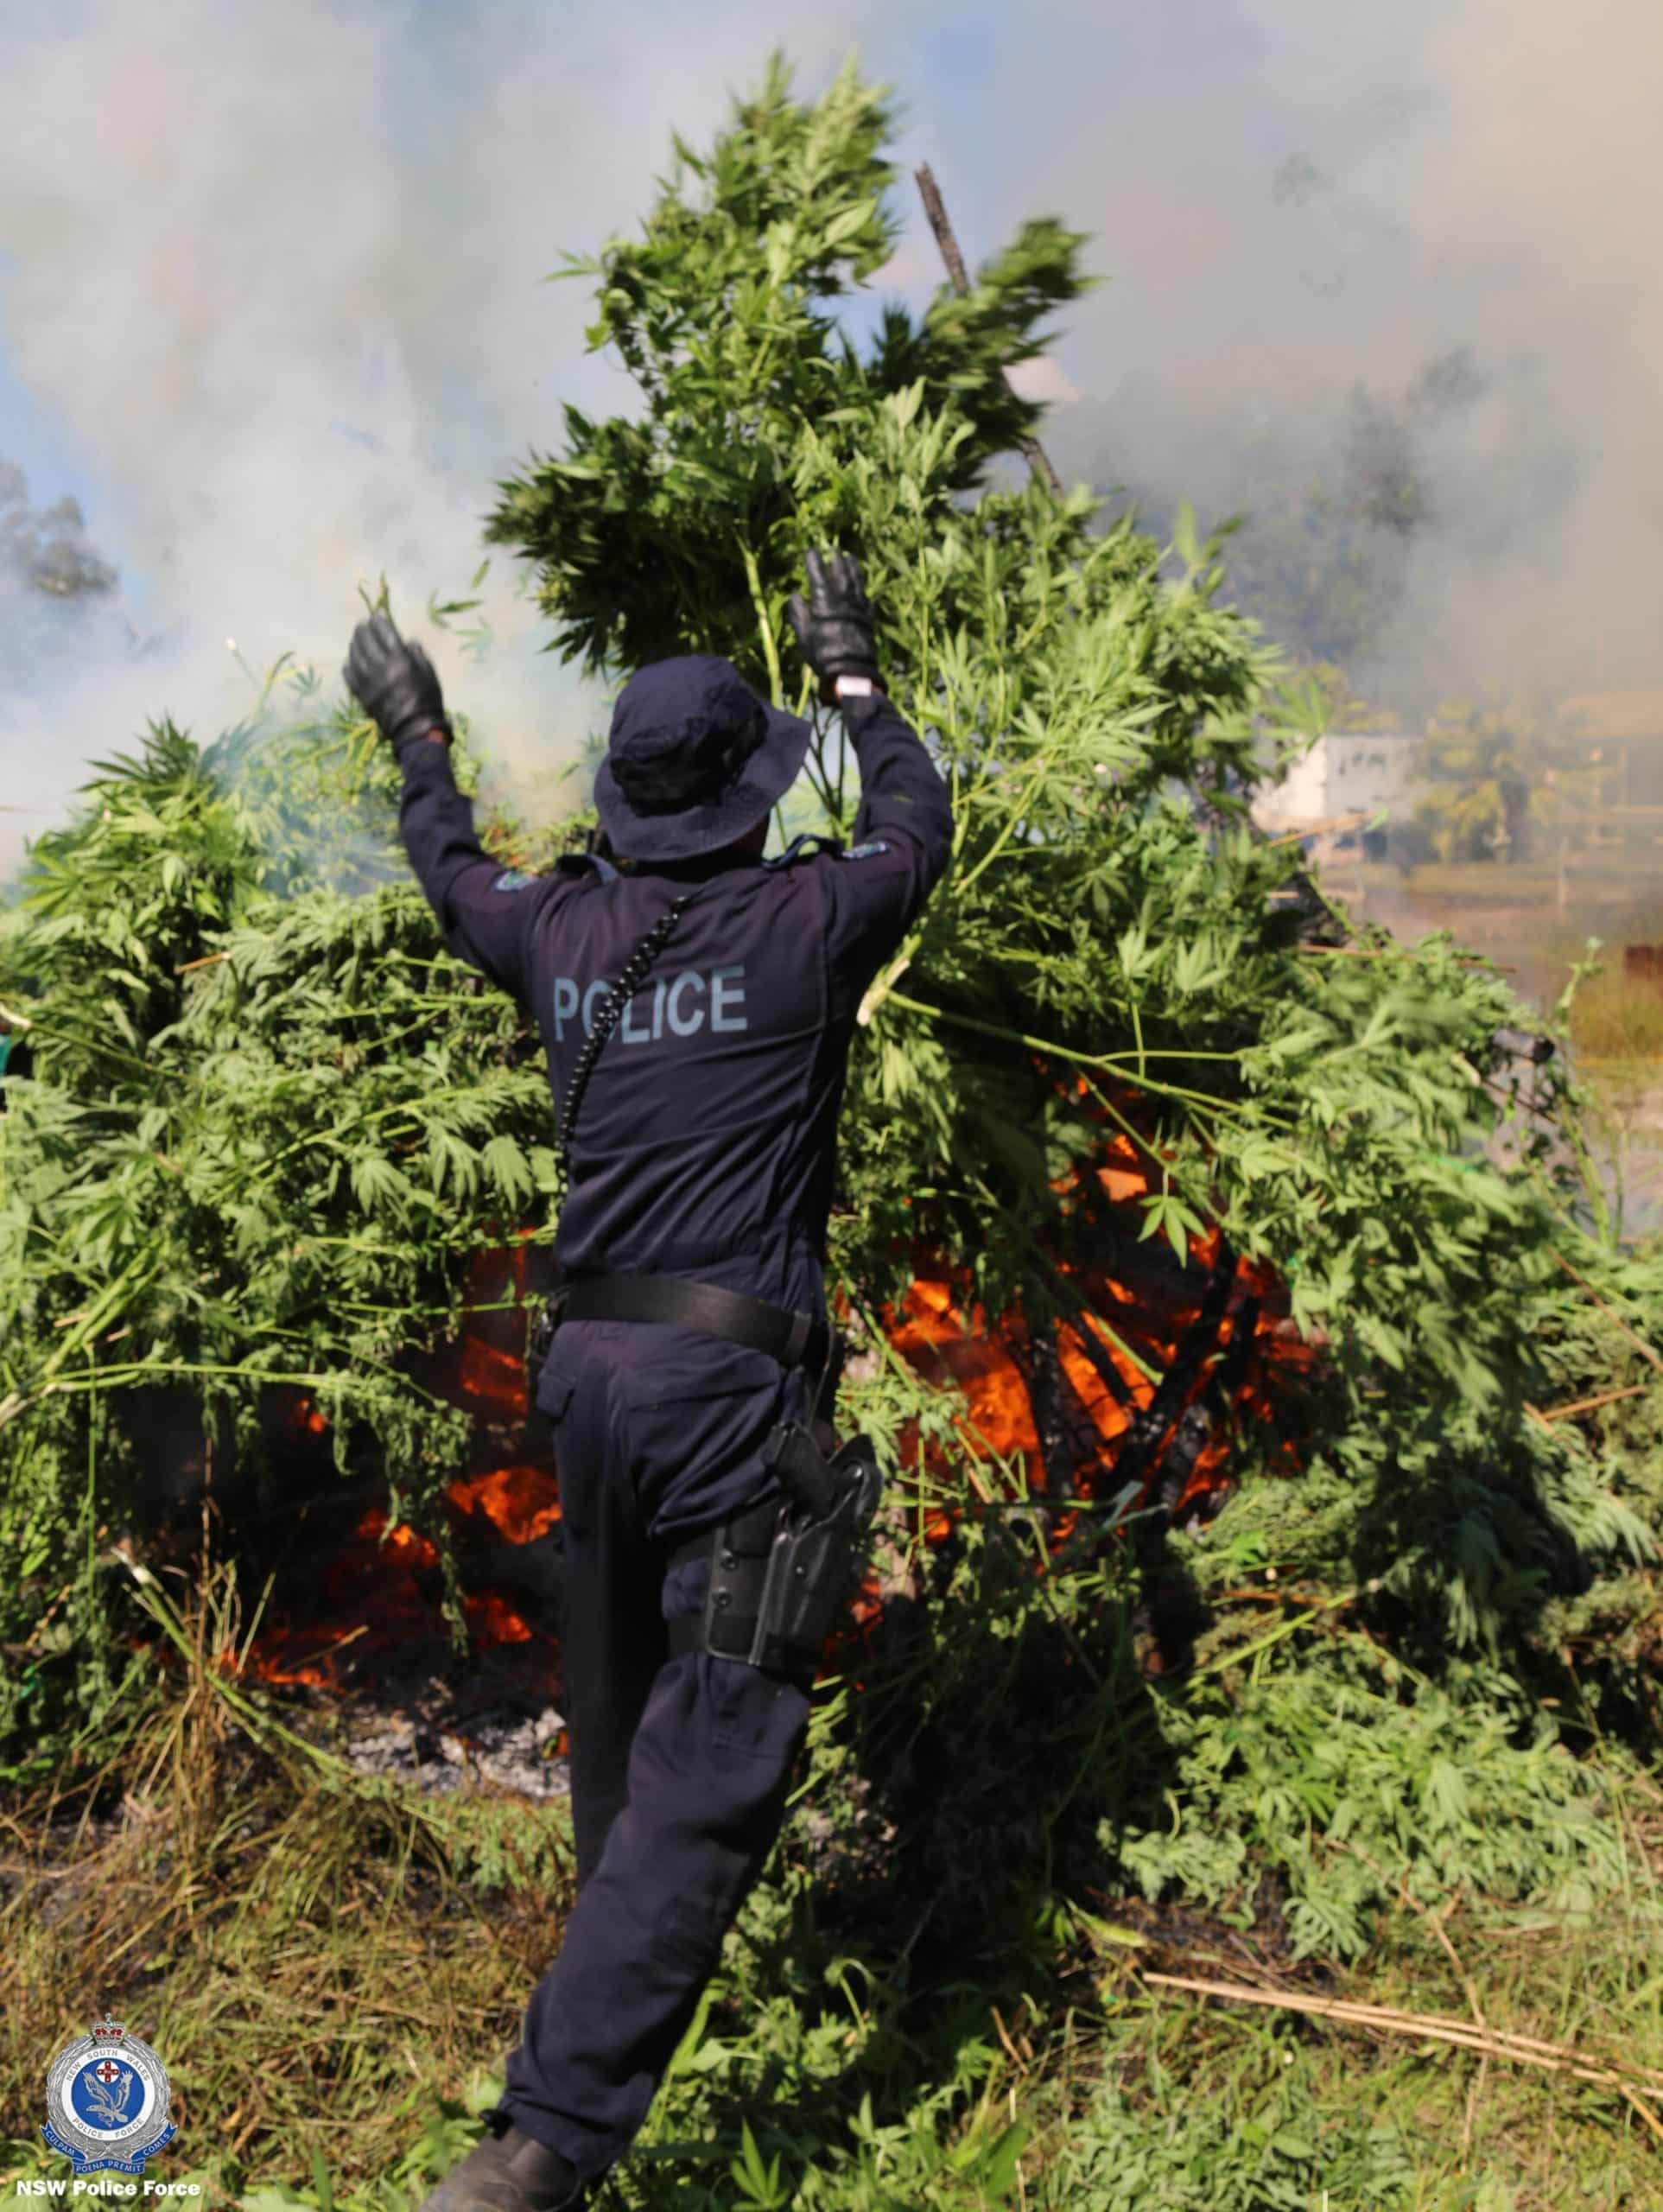 The seized plants were destroyed on site.